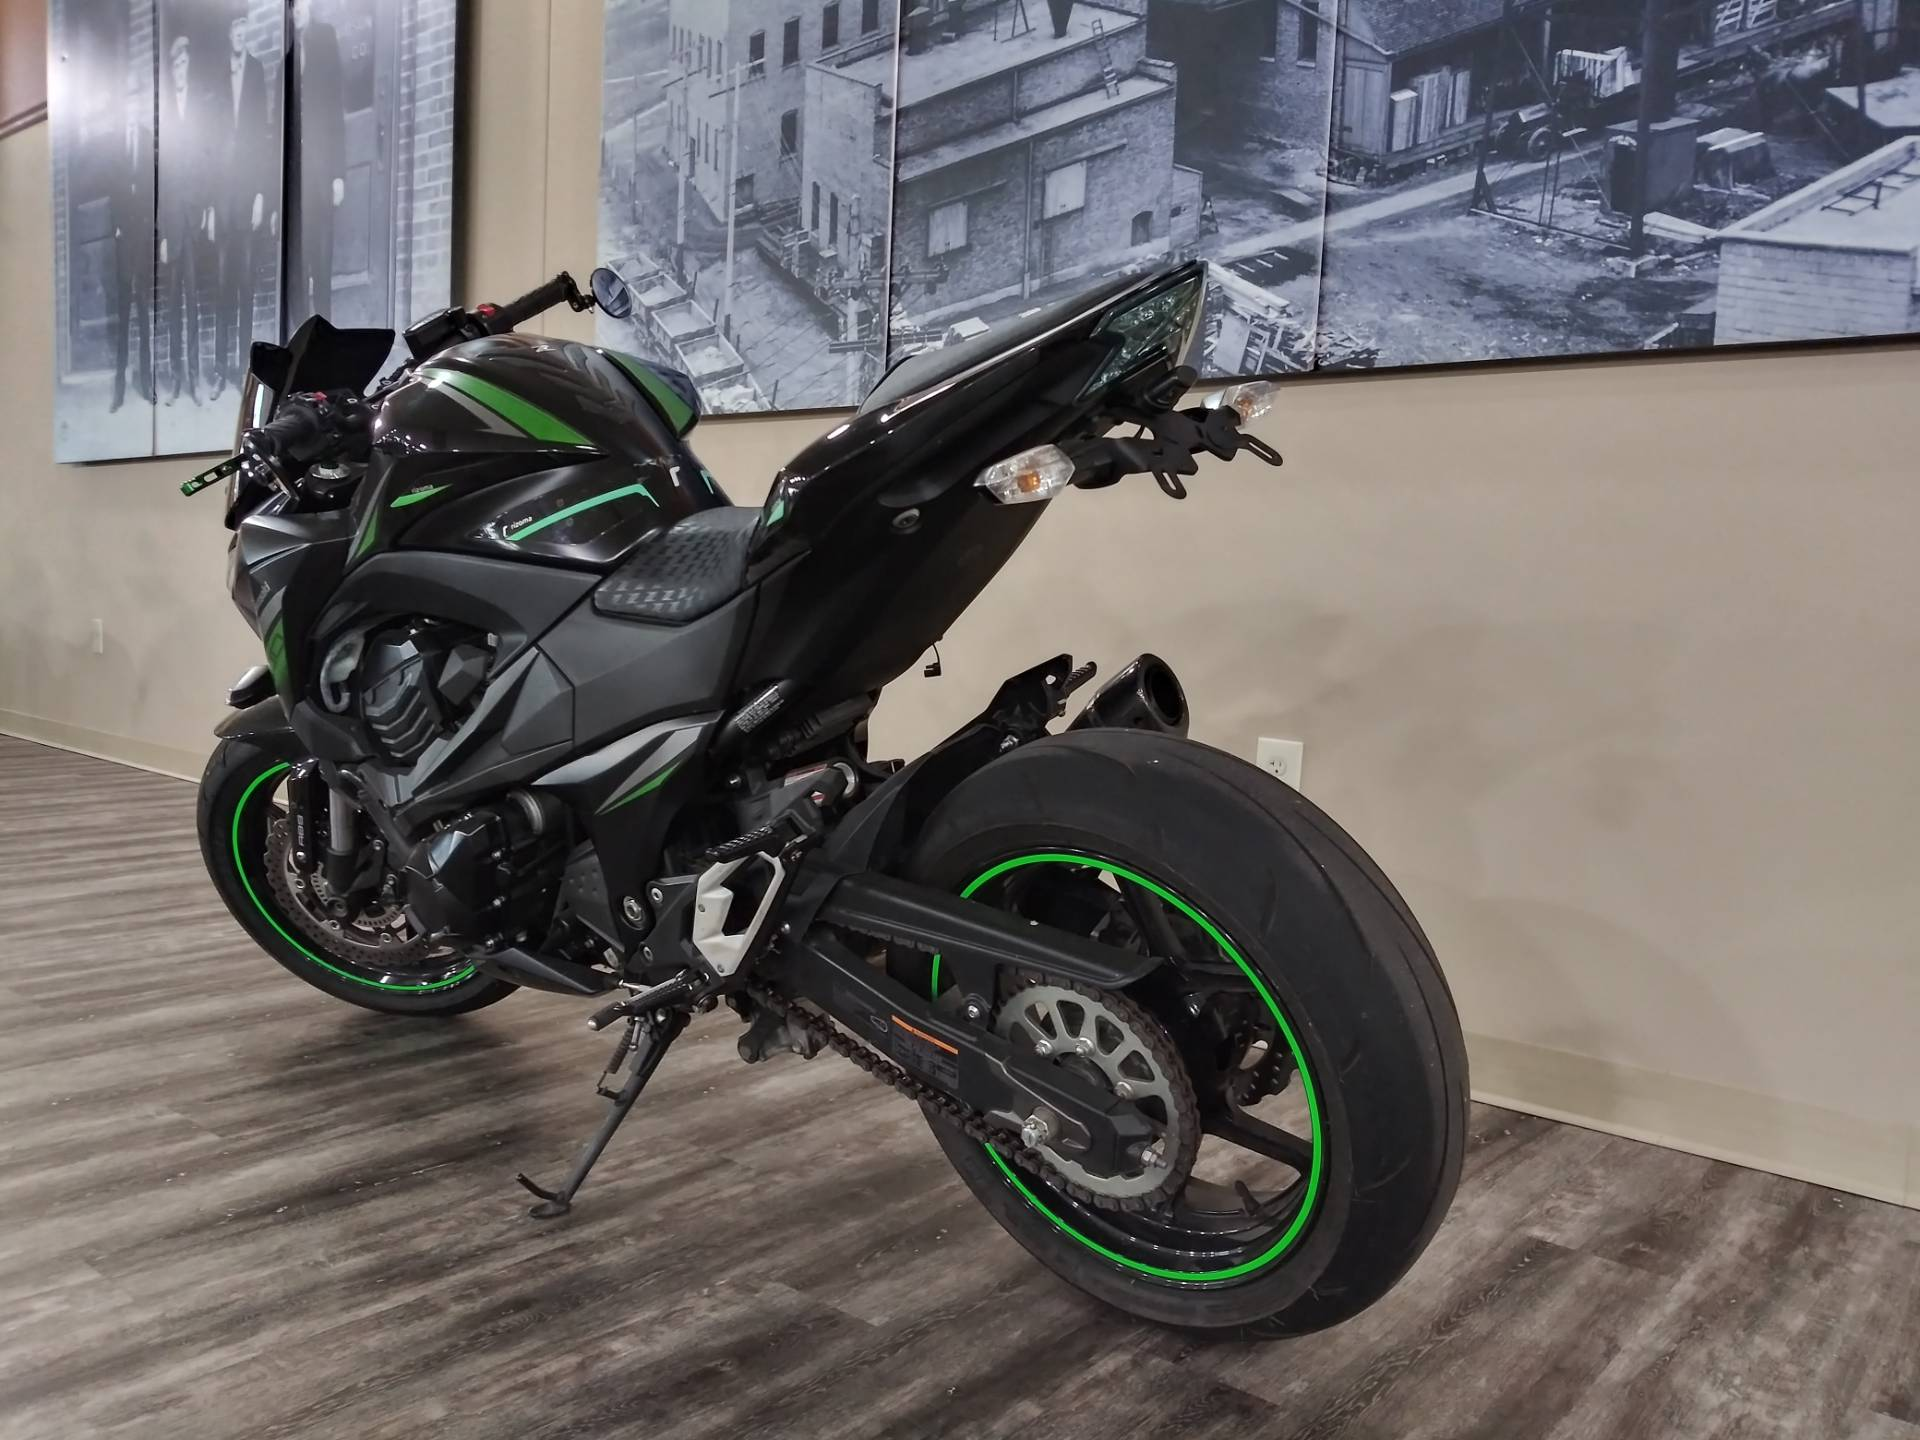 2016 Kawasaki Z800 ABS in Knoxville, Tennessee - Photo 16